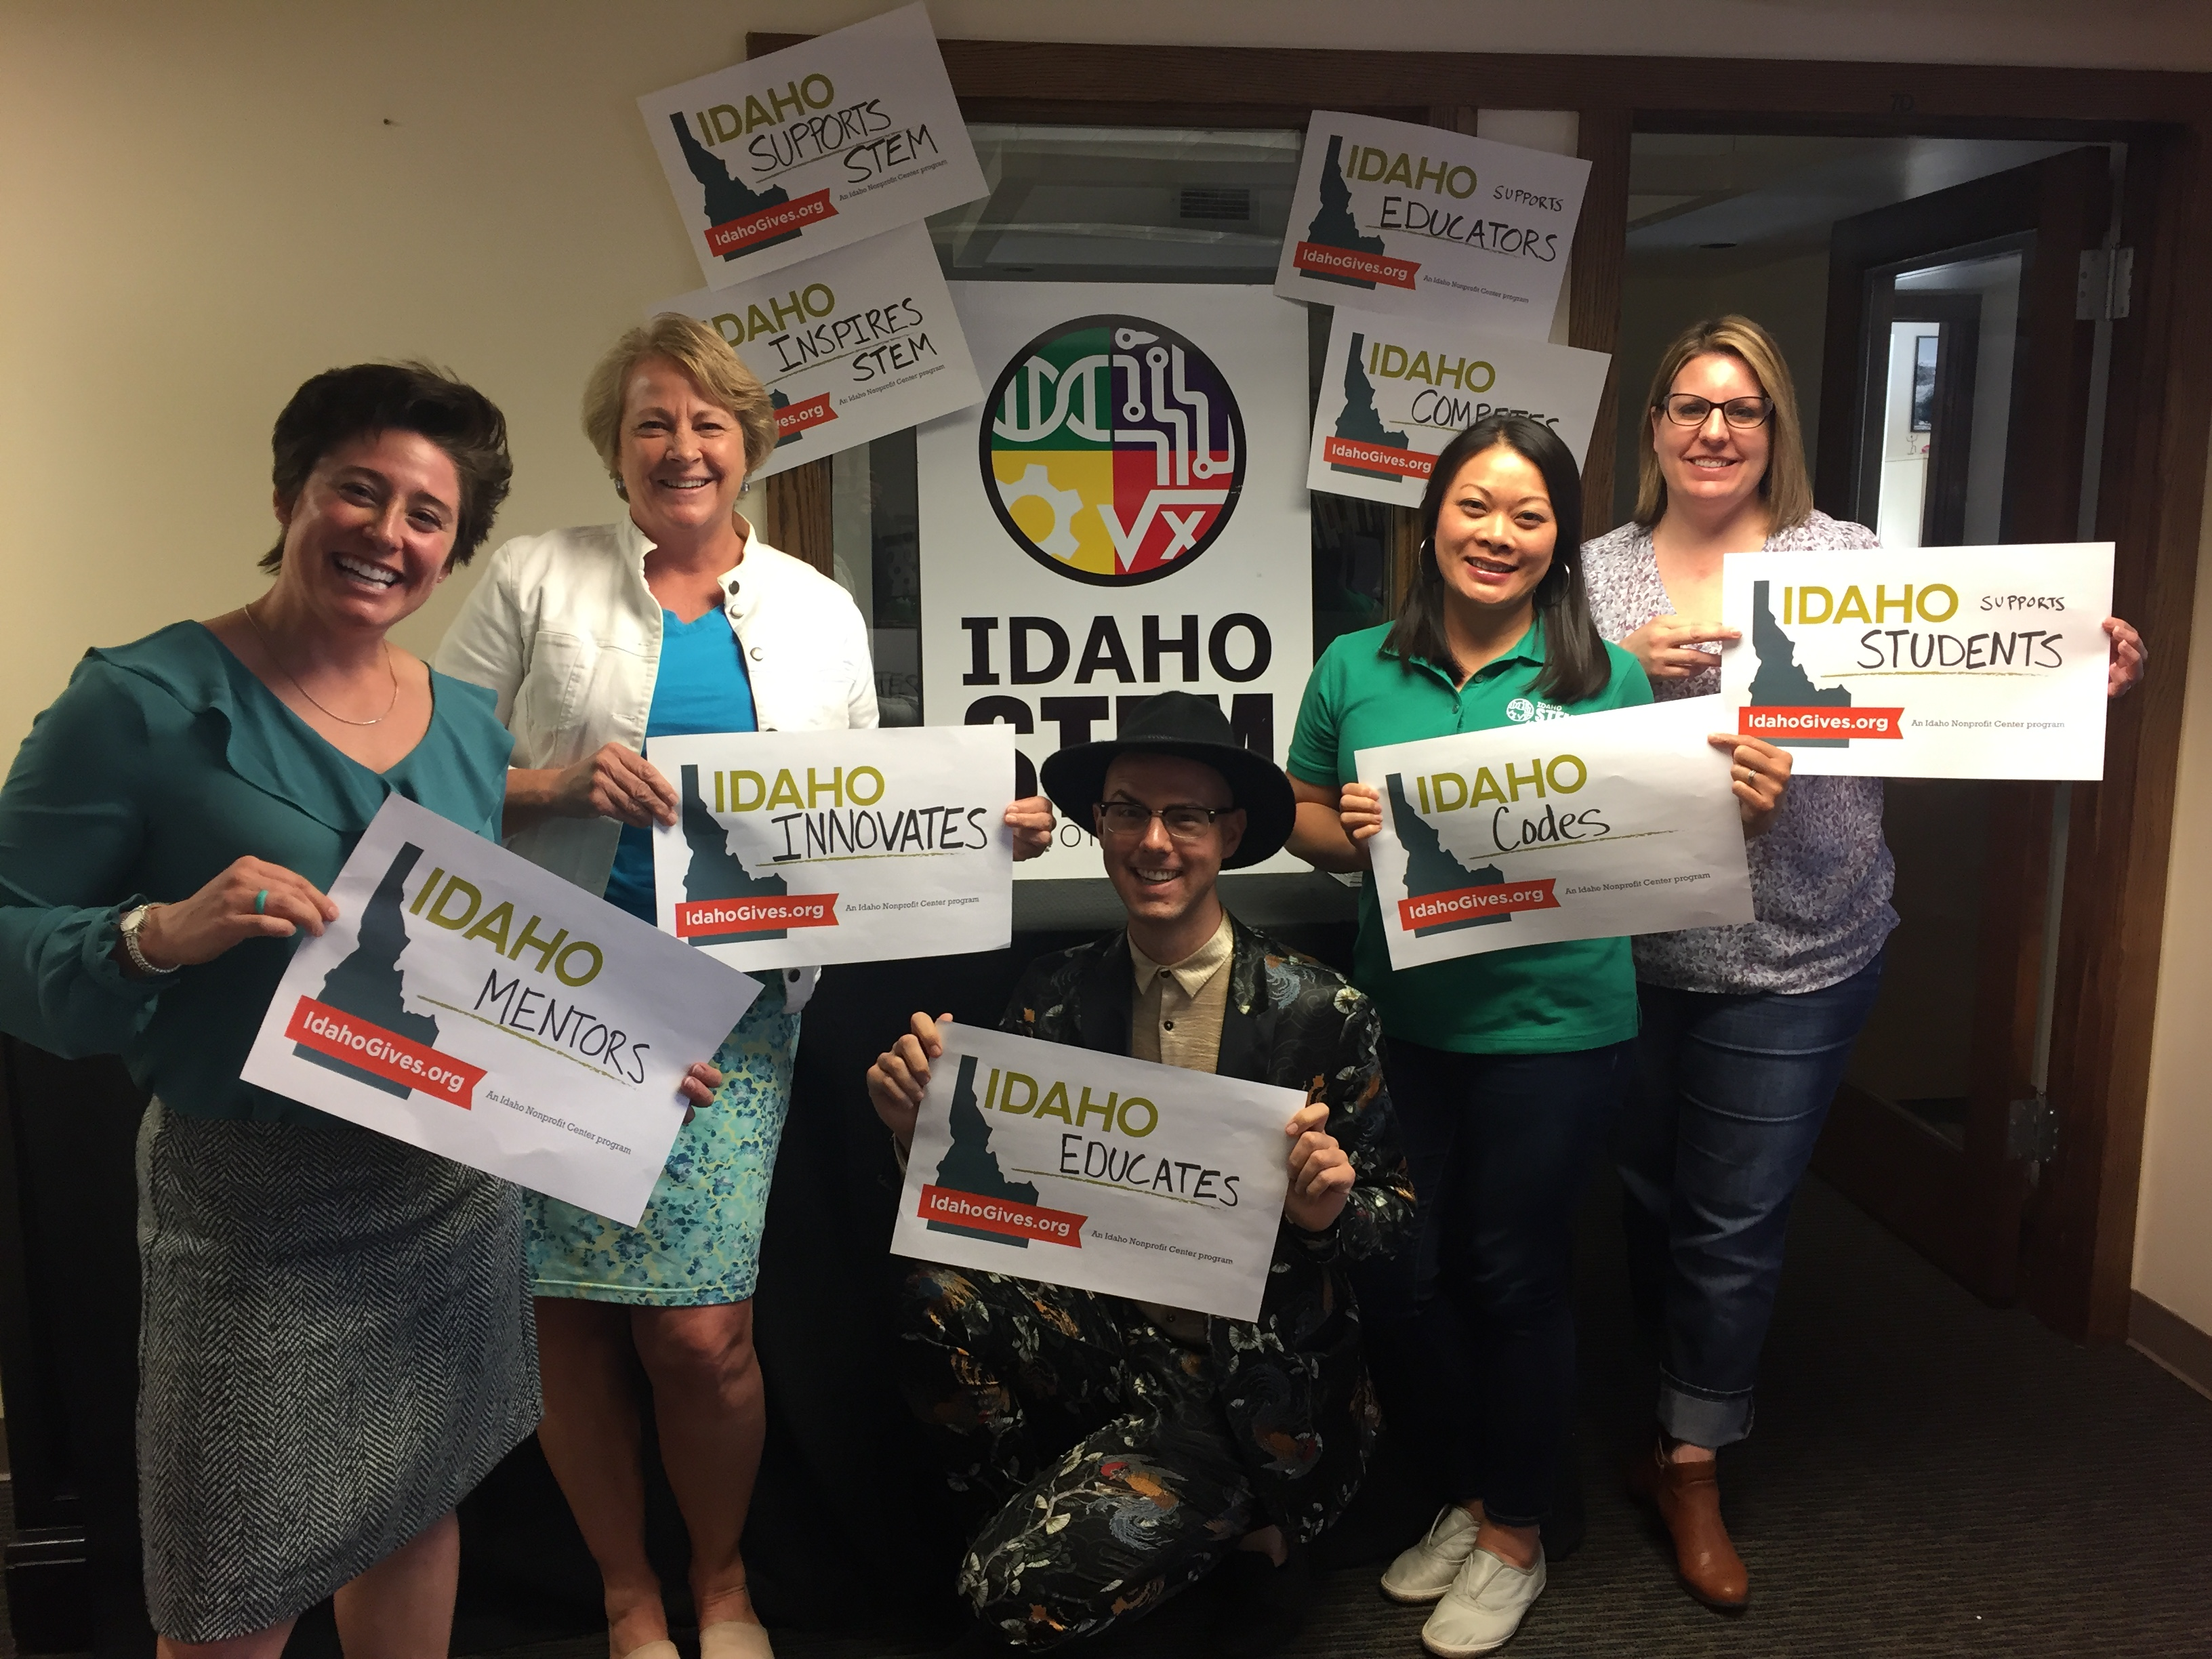 Idaho Gives